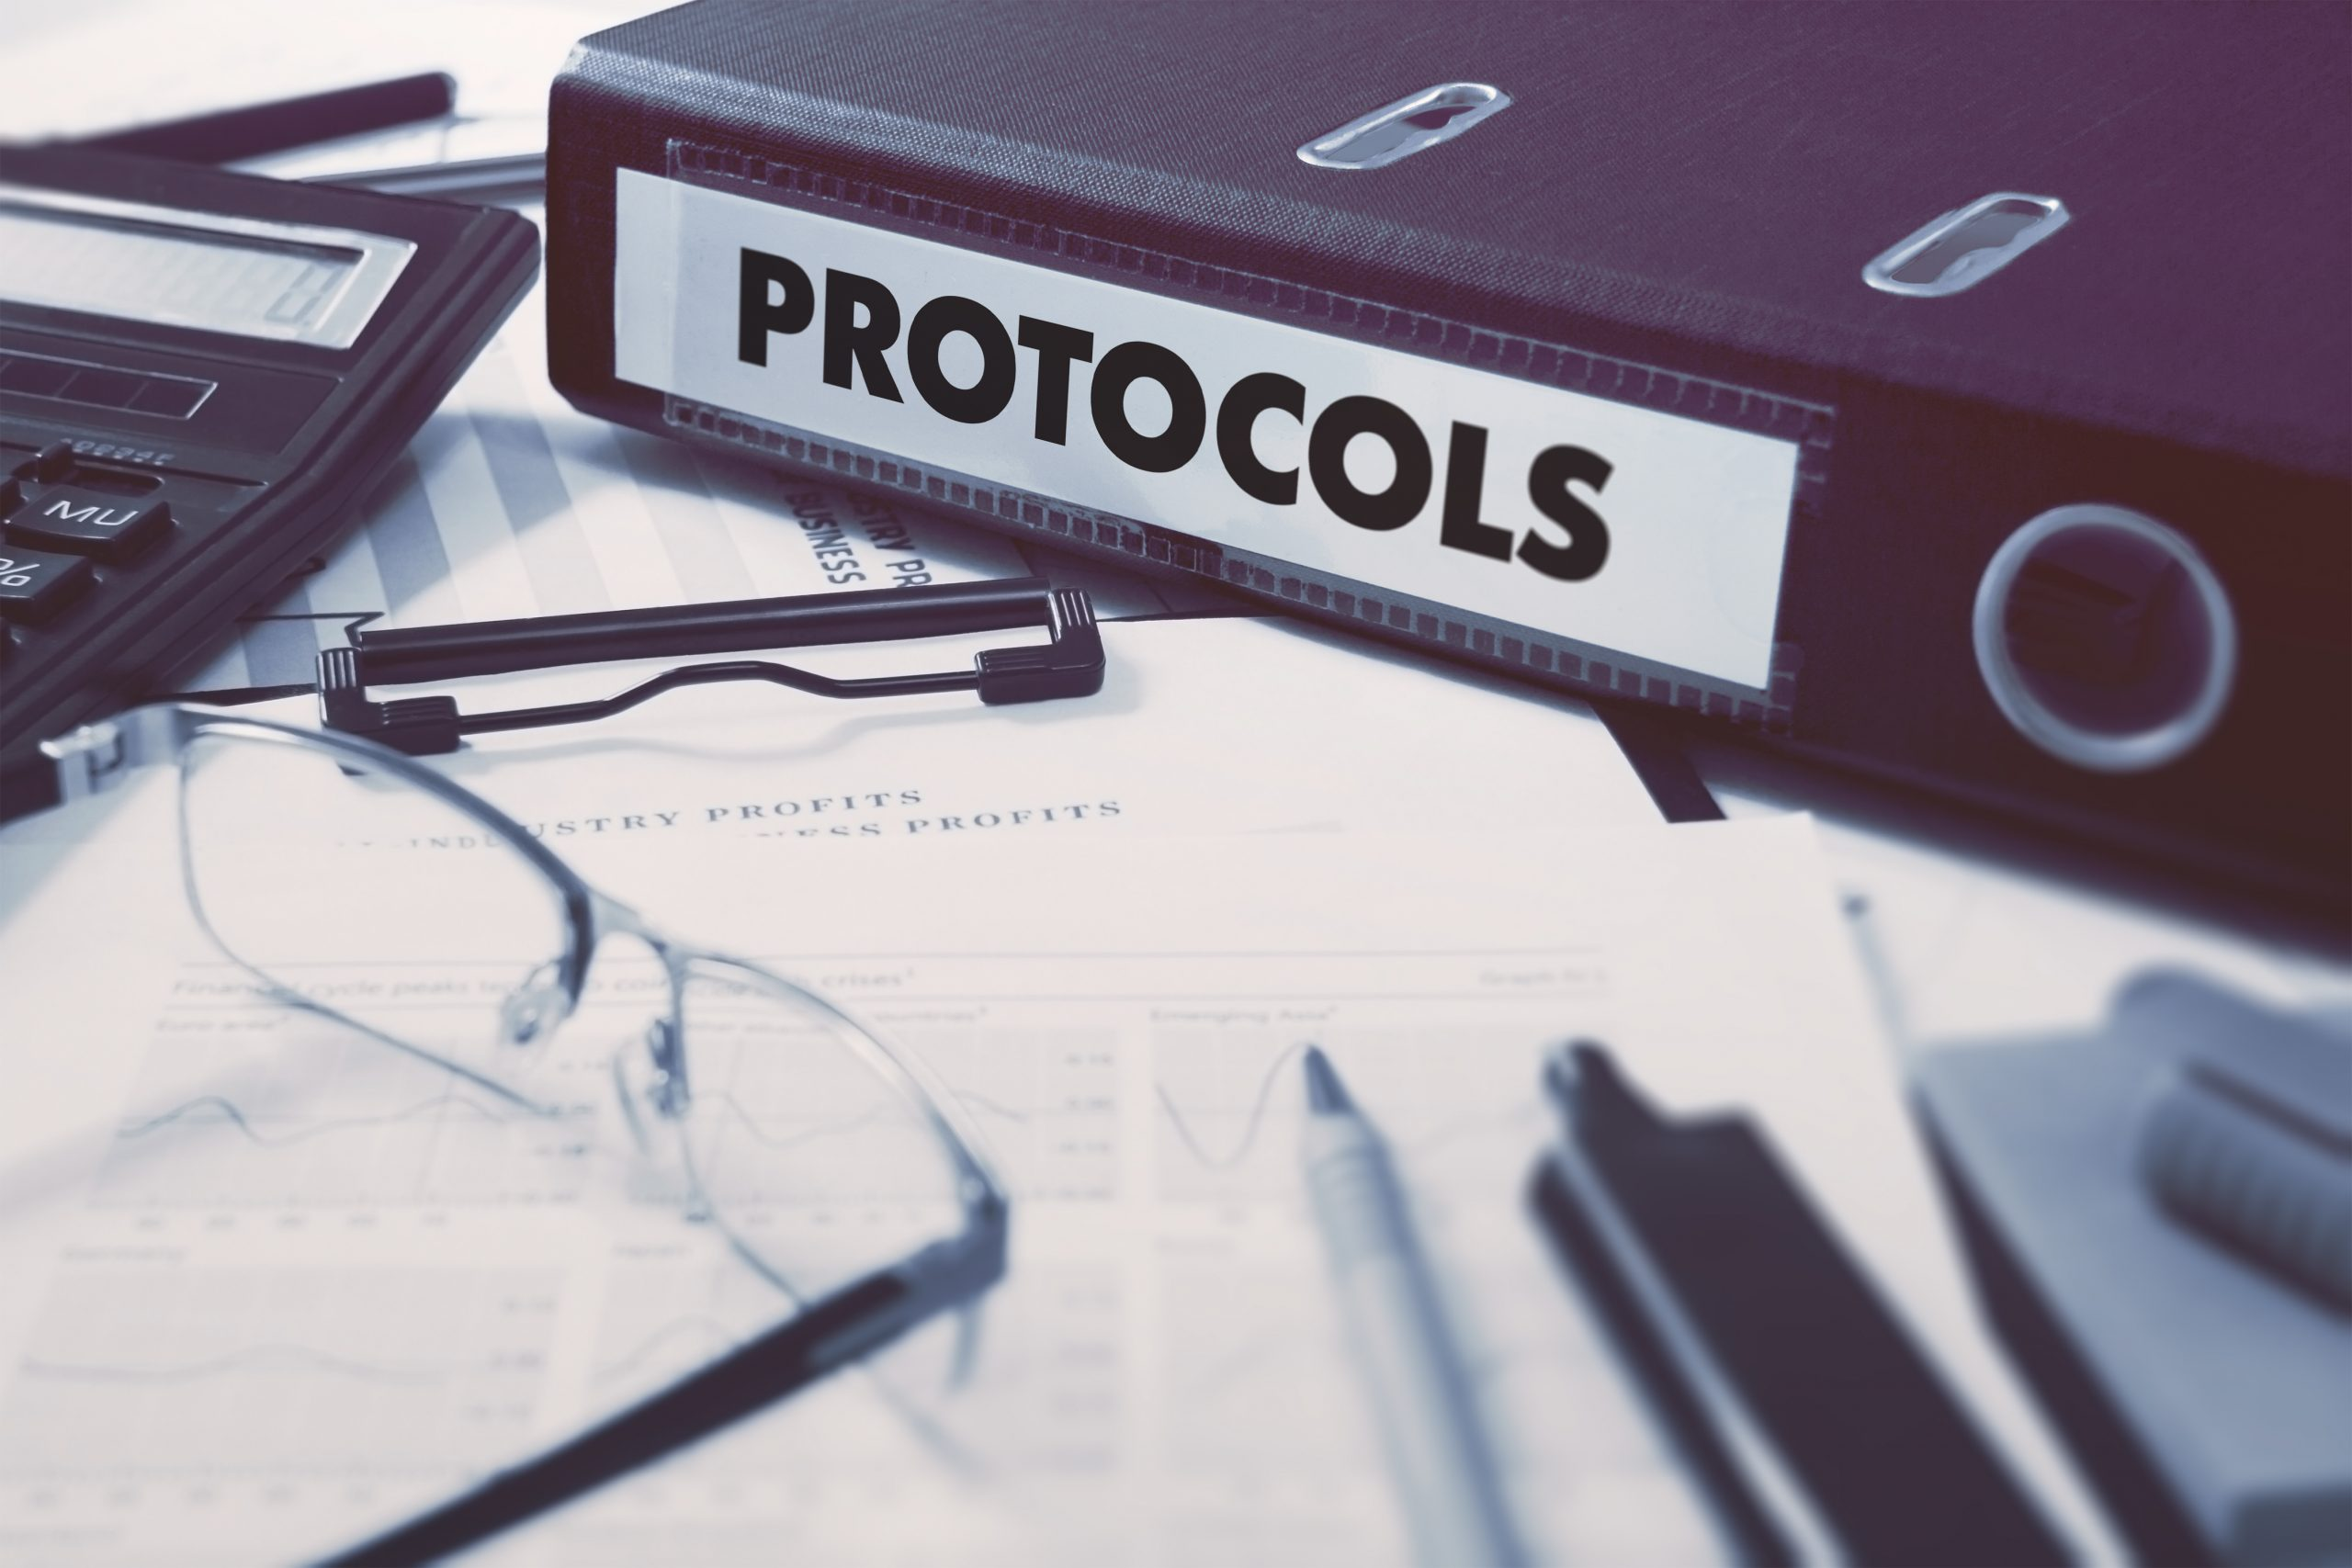 Binder of protocols